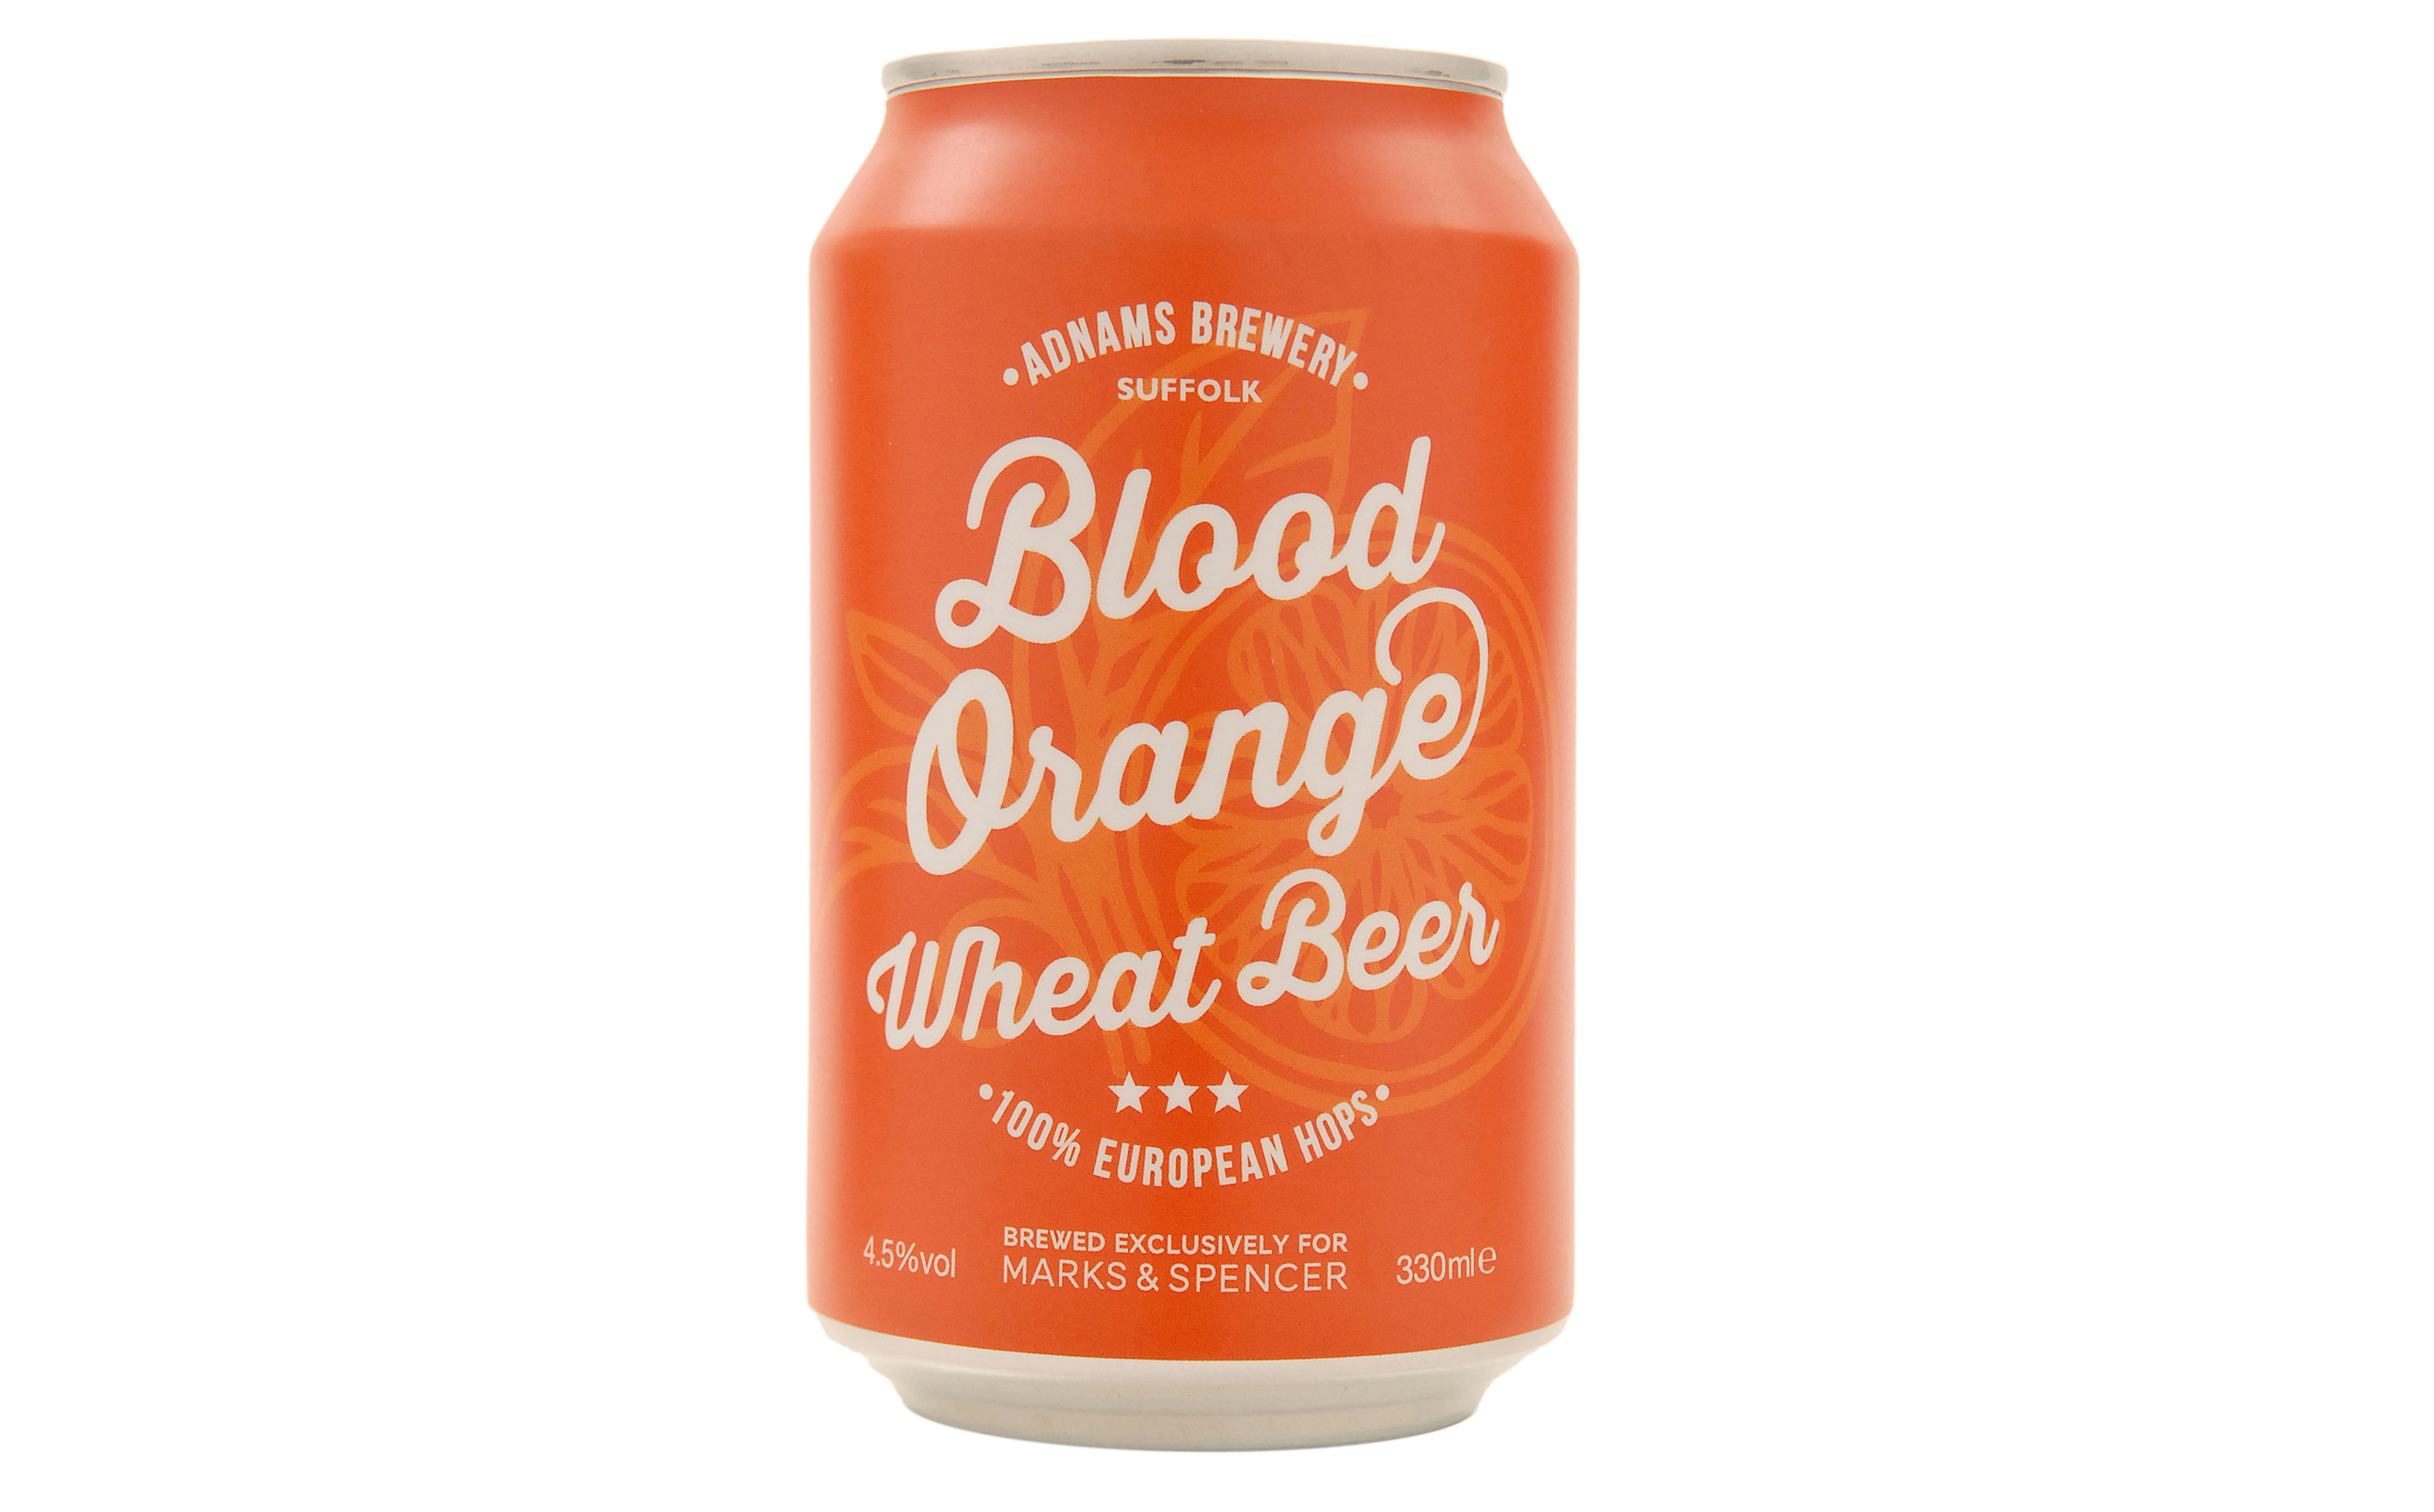 A can of Marks & Spencer's Blood Orange Wheat Beer